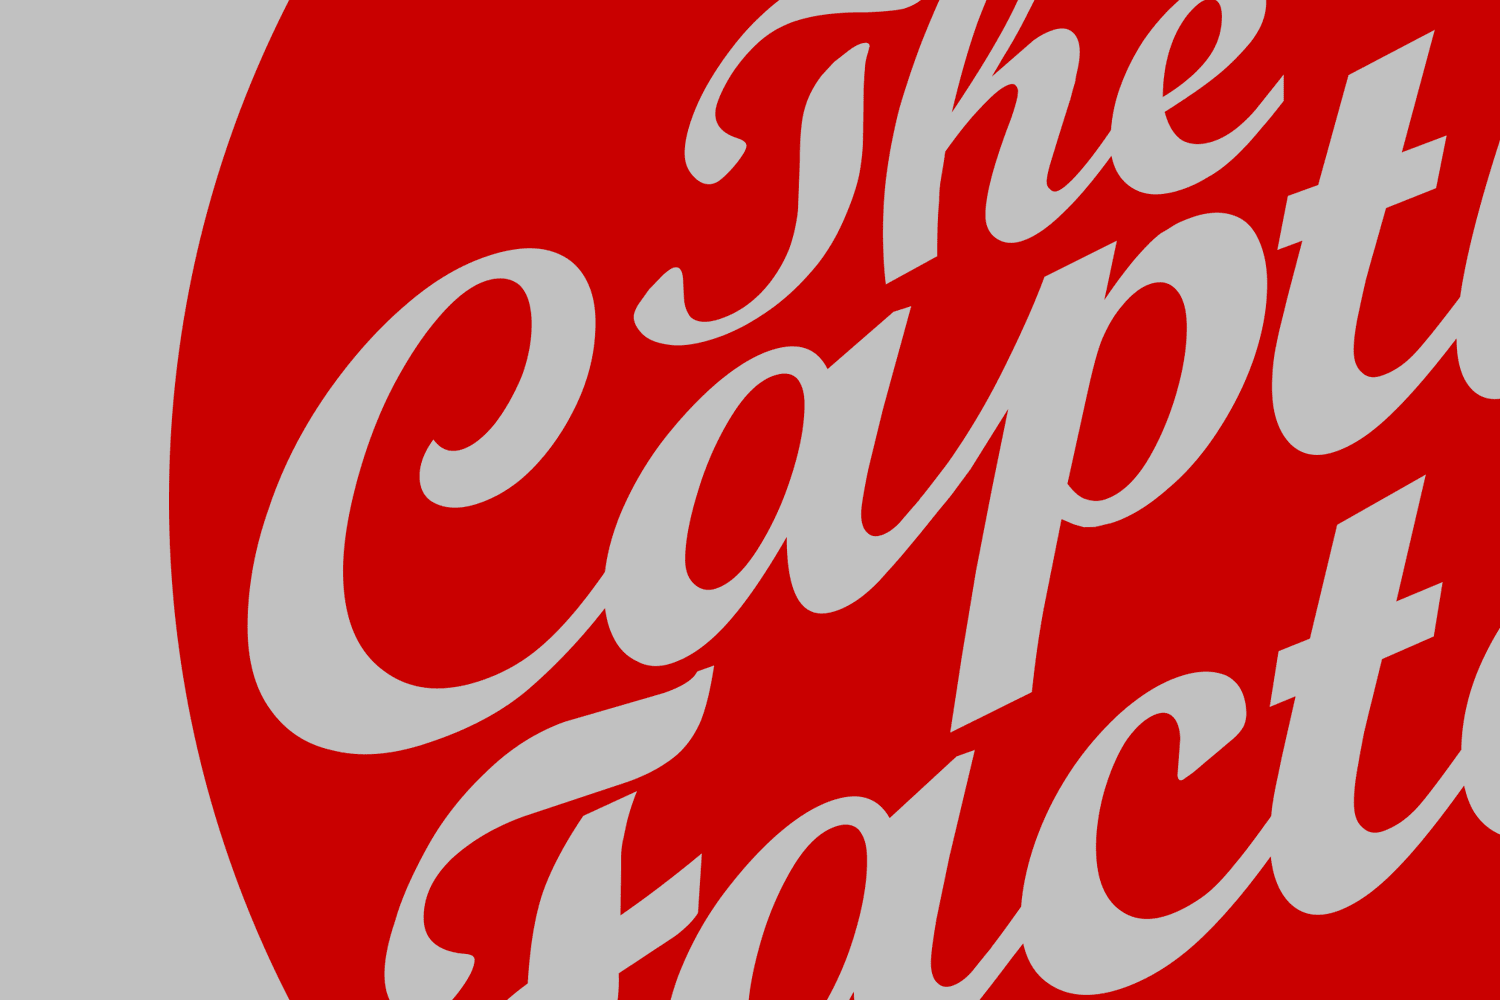 the-capture-factory-logo-staffordshire